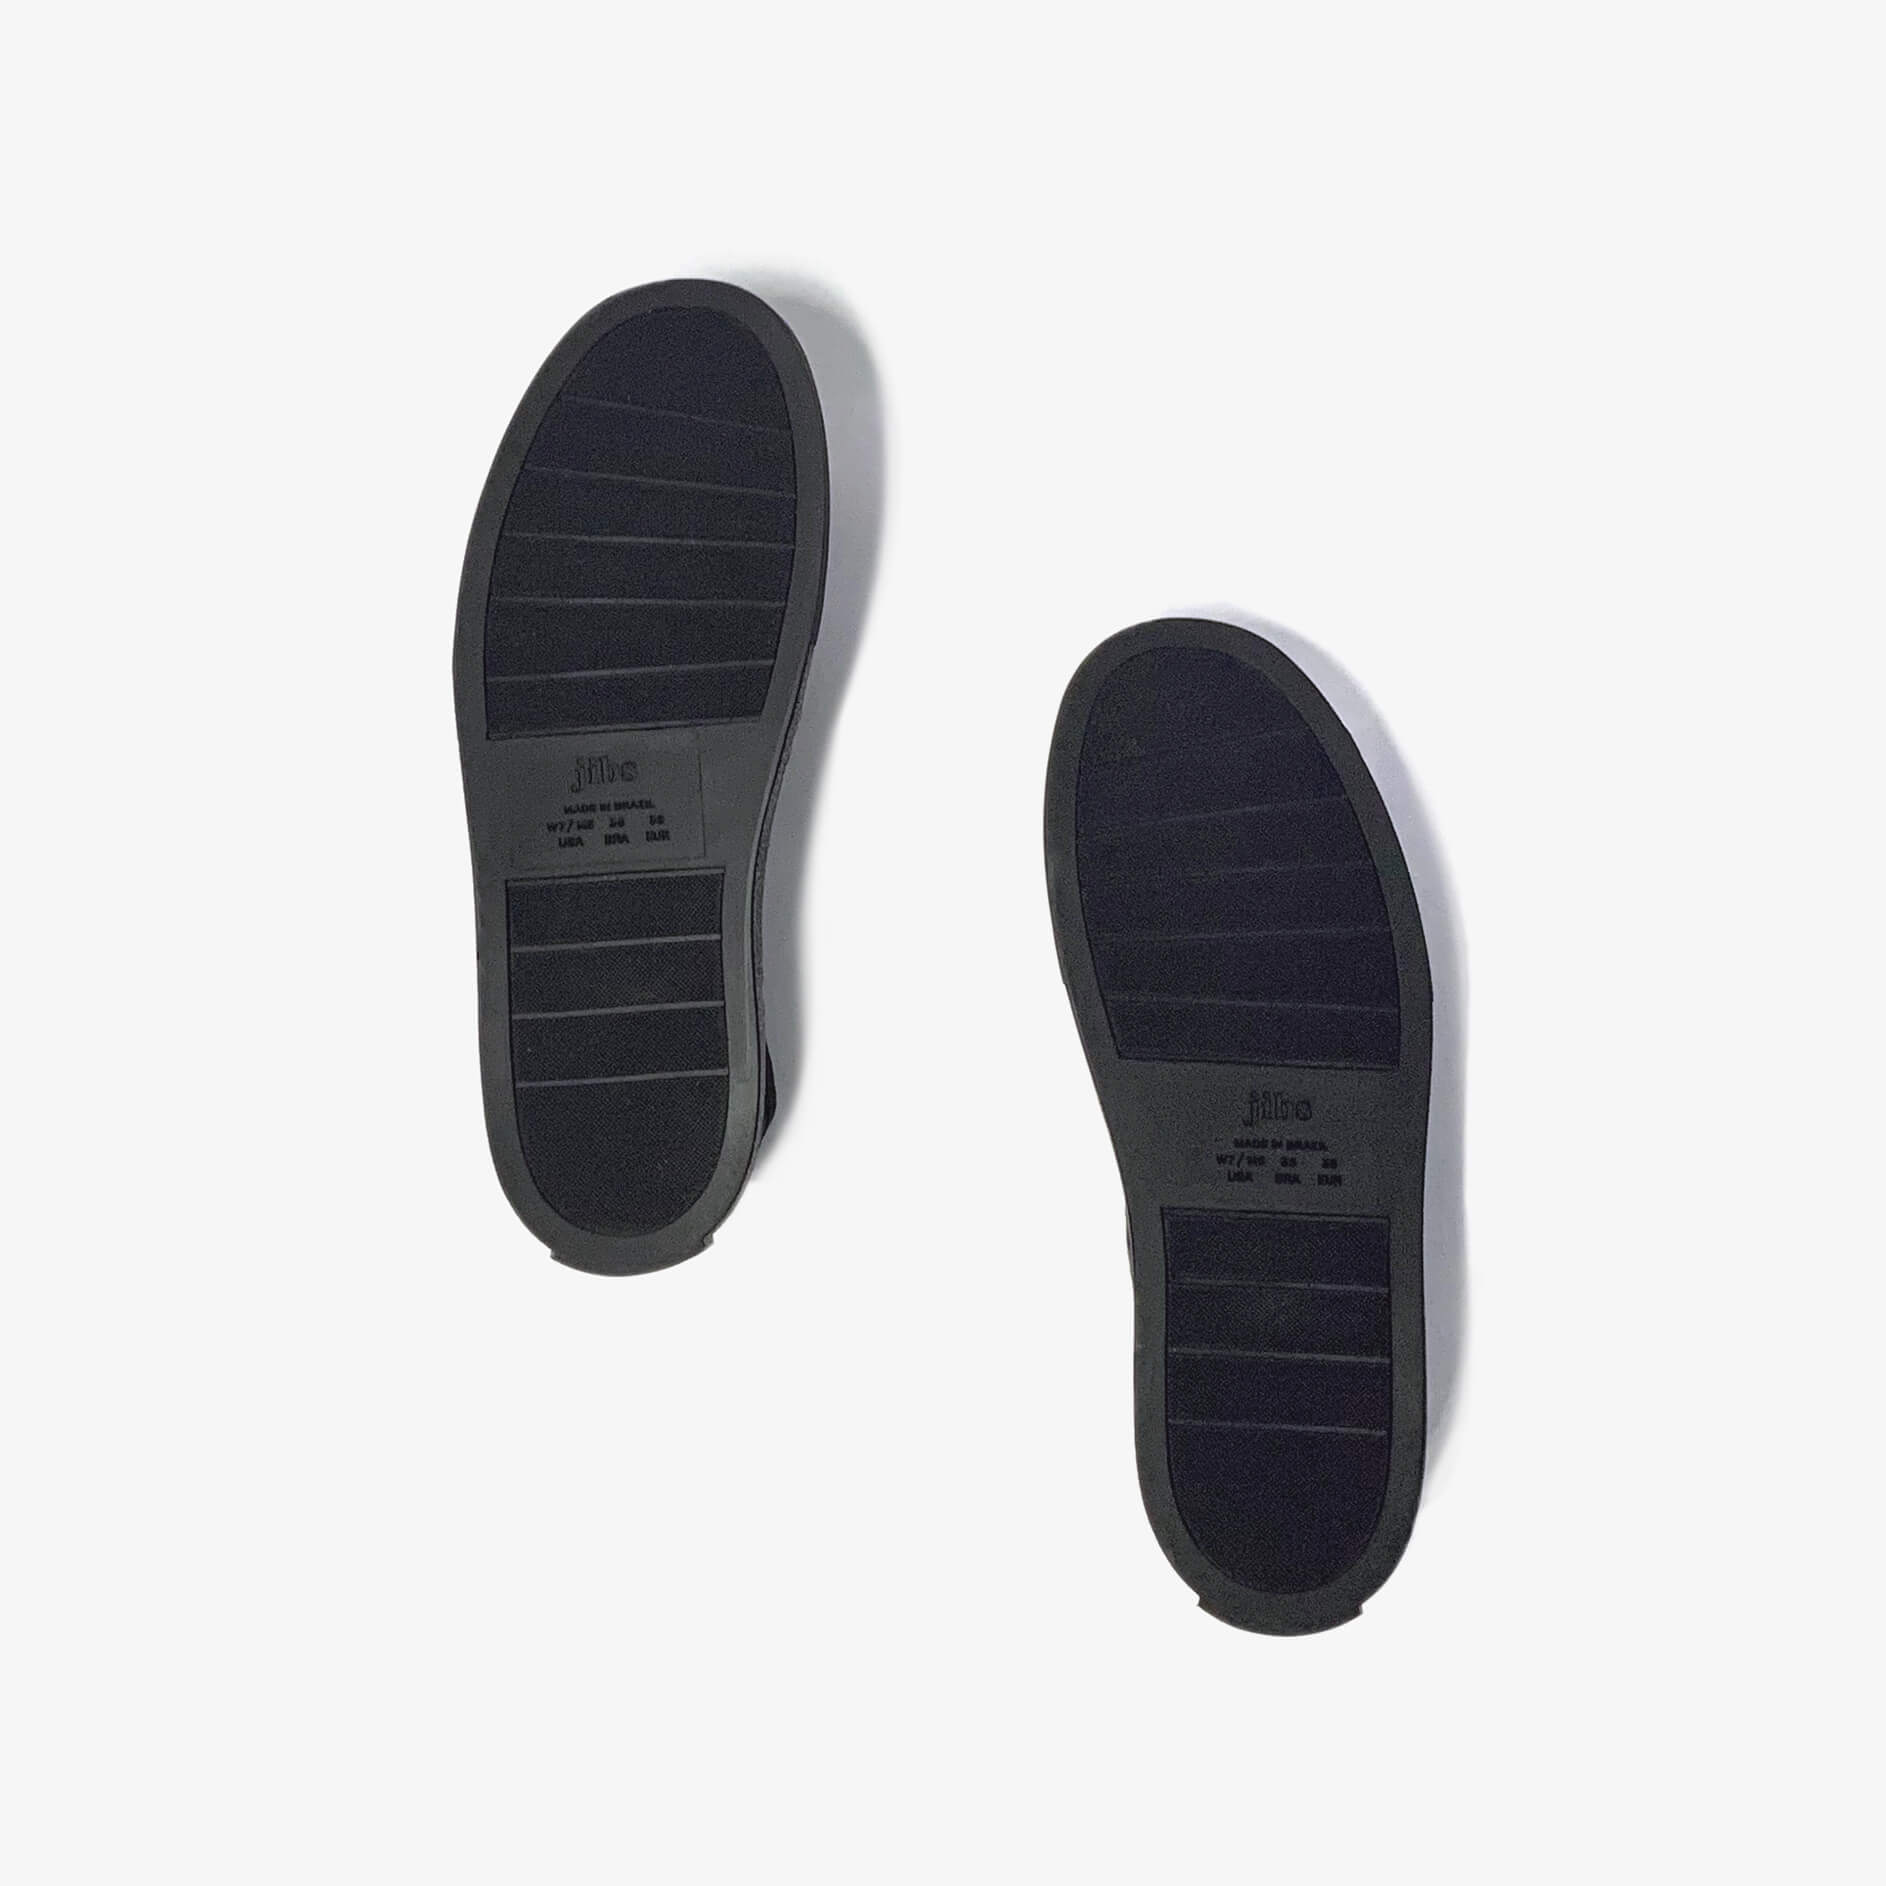 Jibs Classic Jet Black Sneaker-Shoe Recycled Rubber Sole